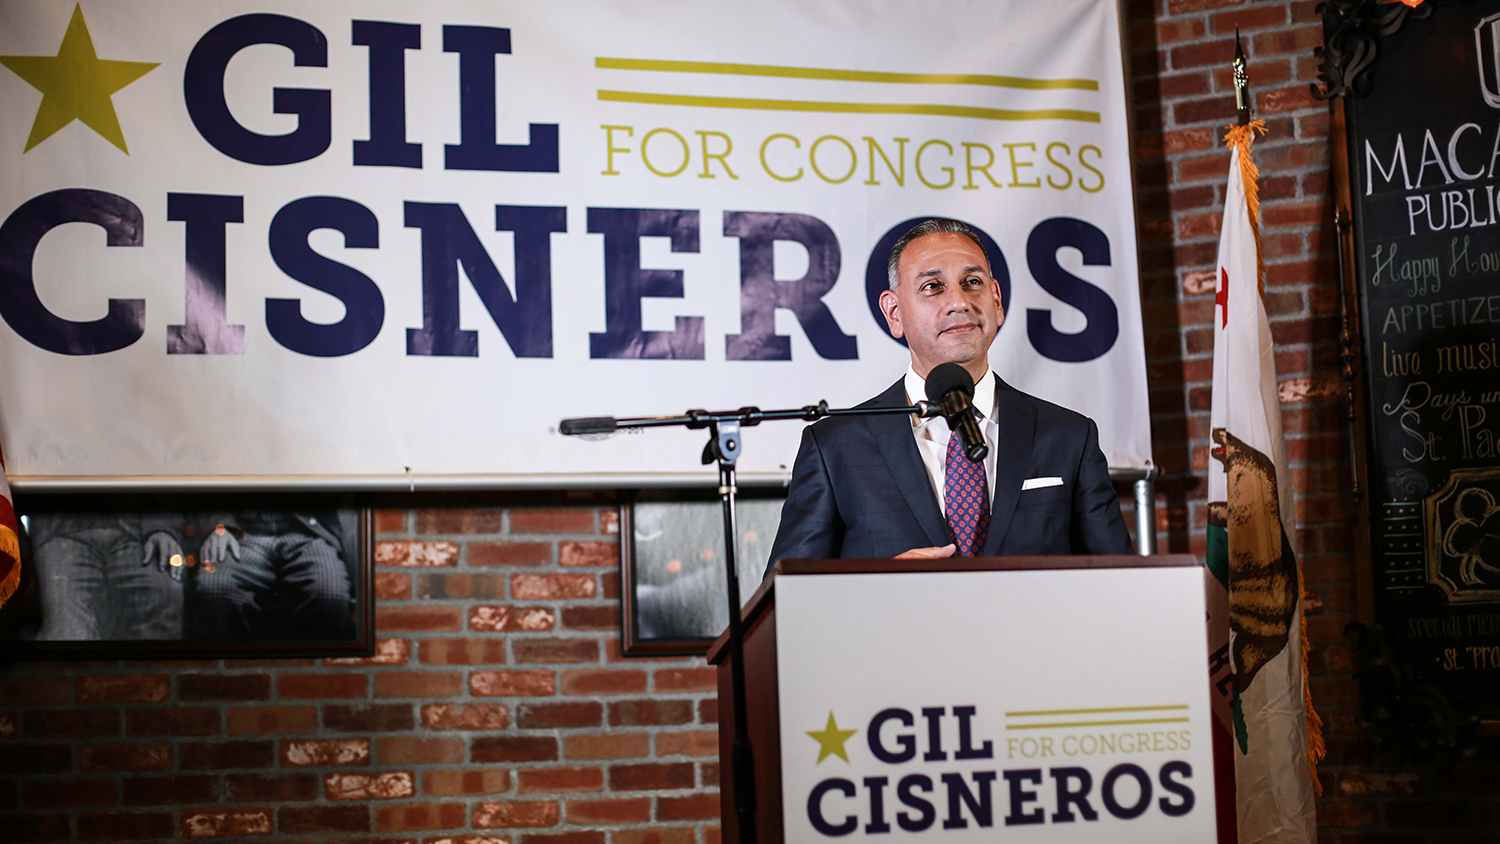 Democrat nominee, Gil Cisneros, hopes to flip CA-39 in the upcoming midterm election.